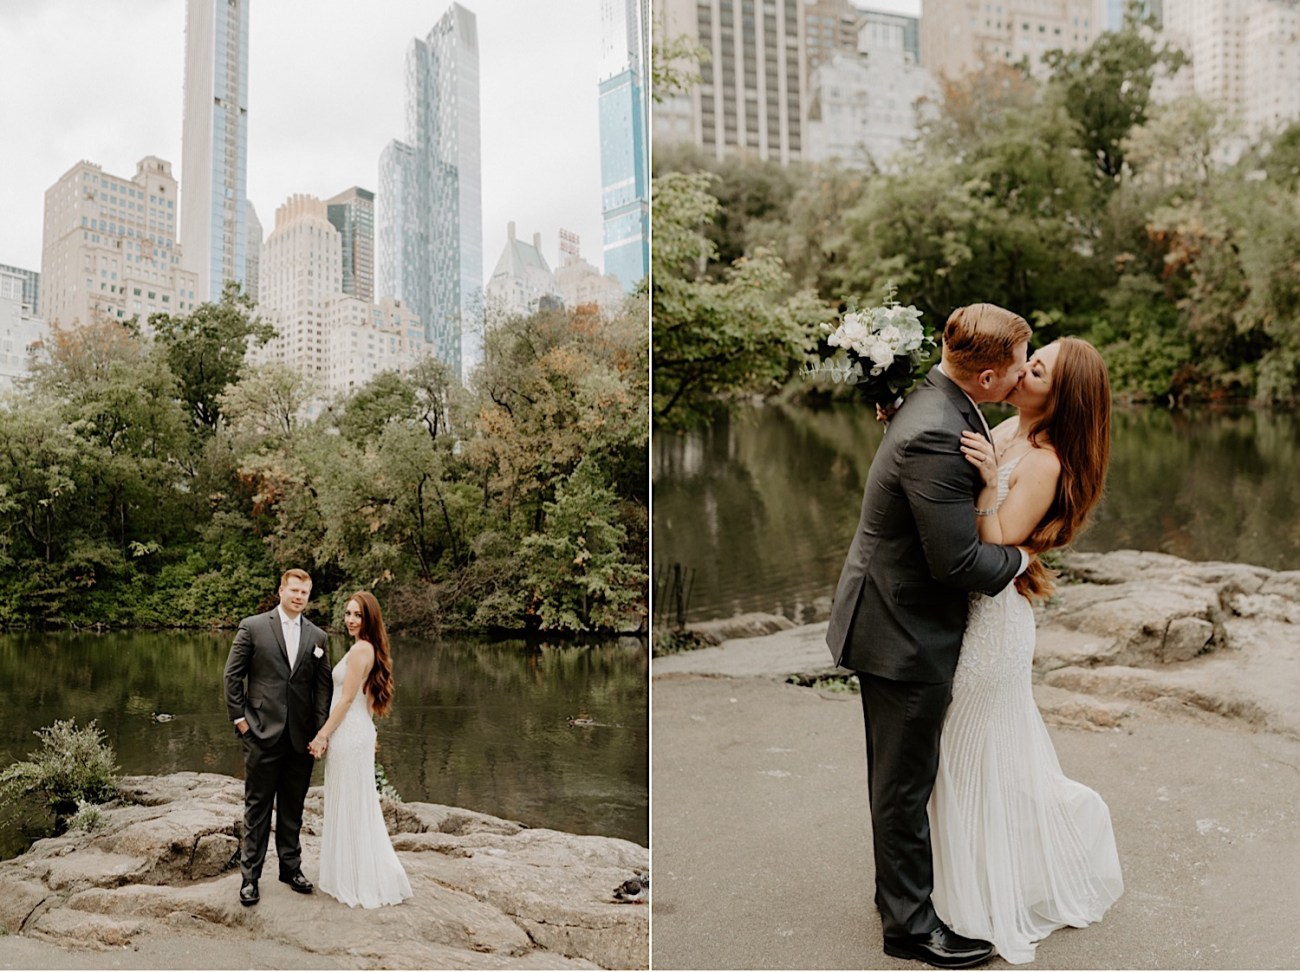 Central Park Wedding Photos Central Park Elopement NYC Wedding Photographer 09